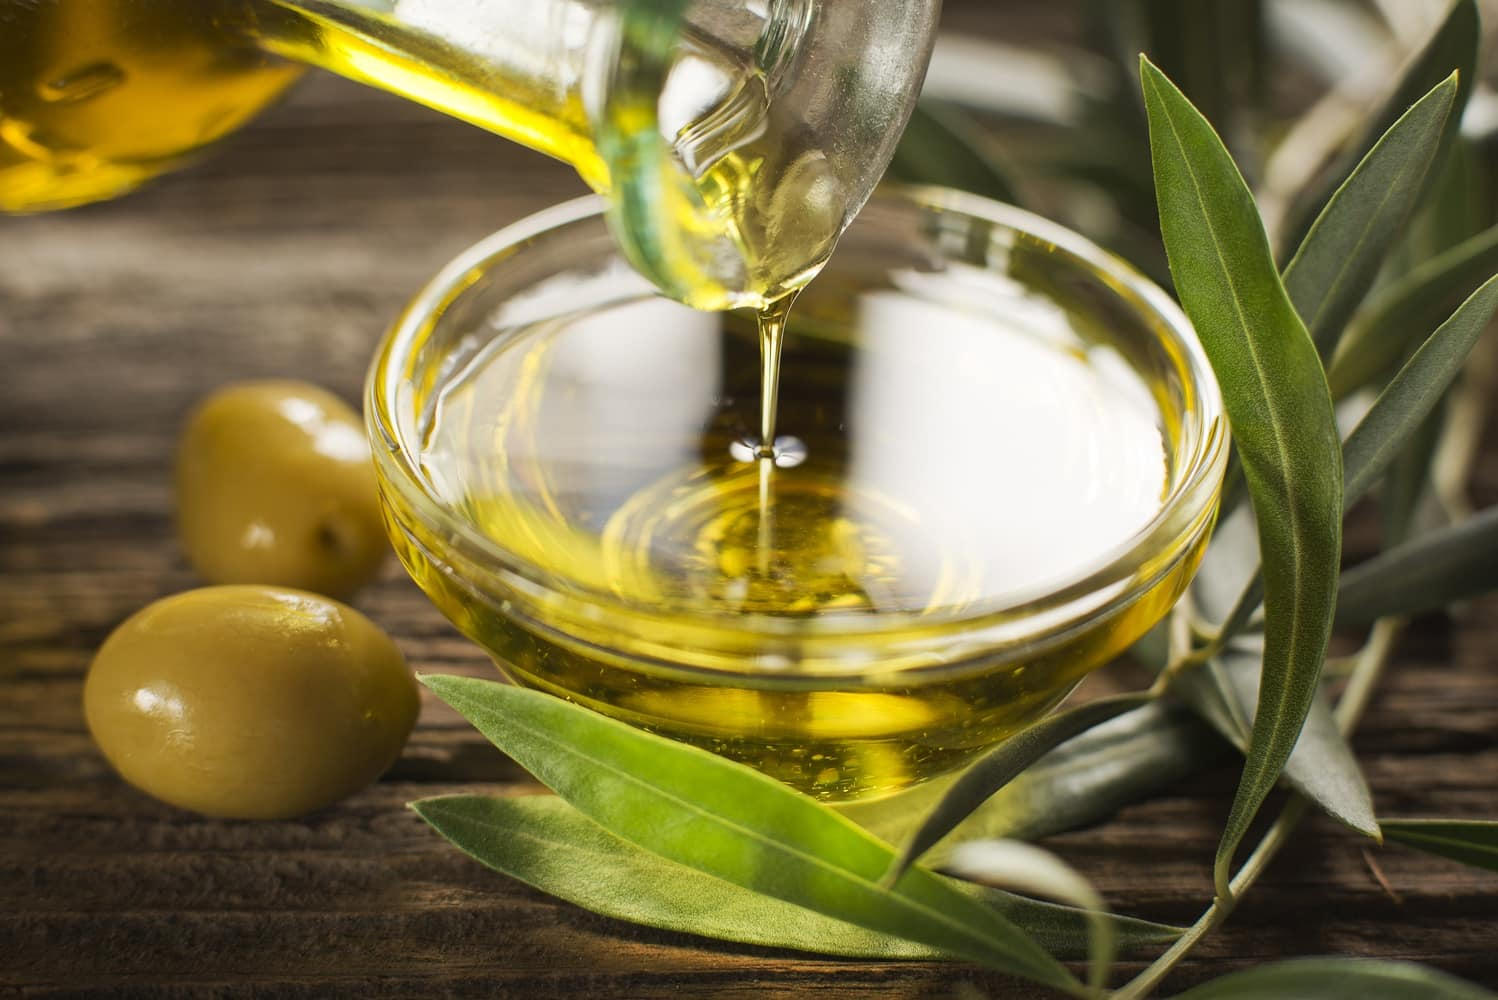 Vegetable Oil Vs. Olive Oil